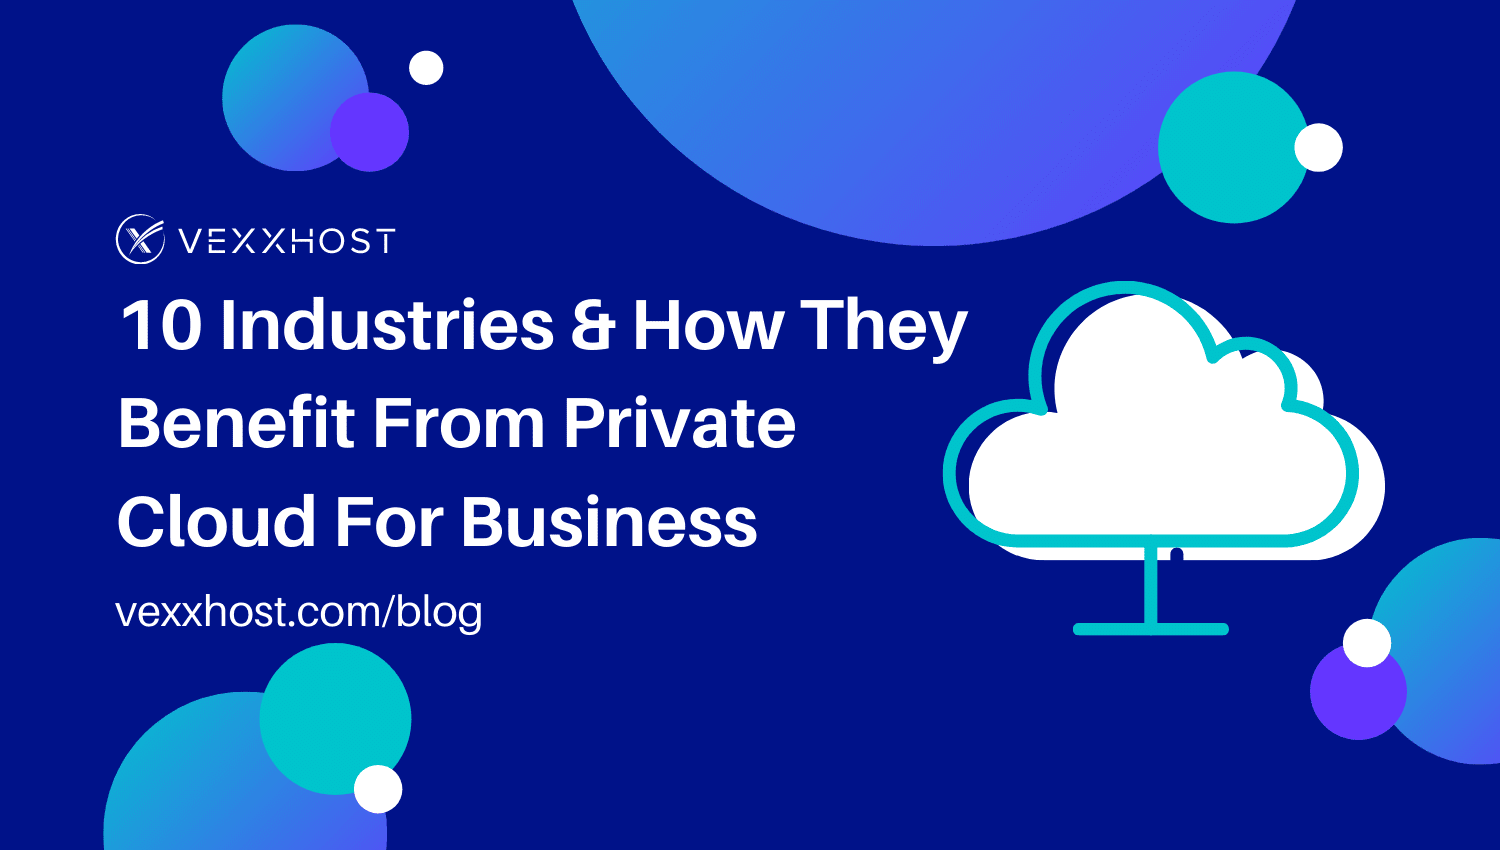 10-Industries-How-They-Benefit-from-Private-Cloud-for-Business